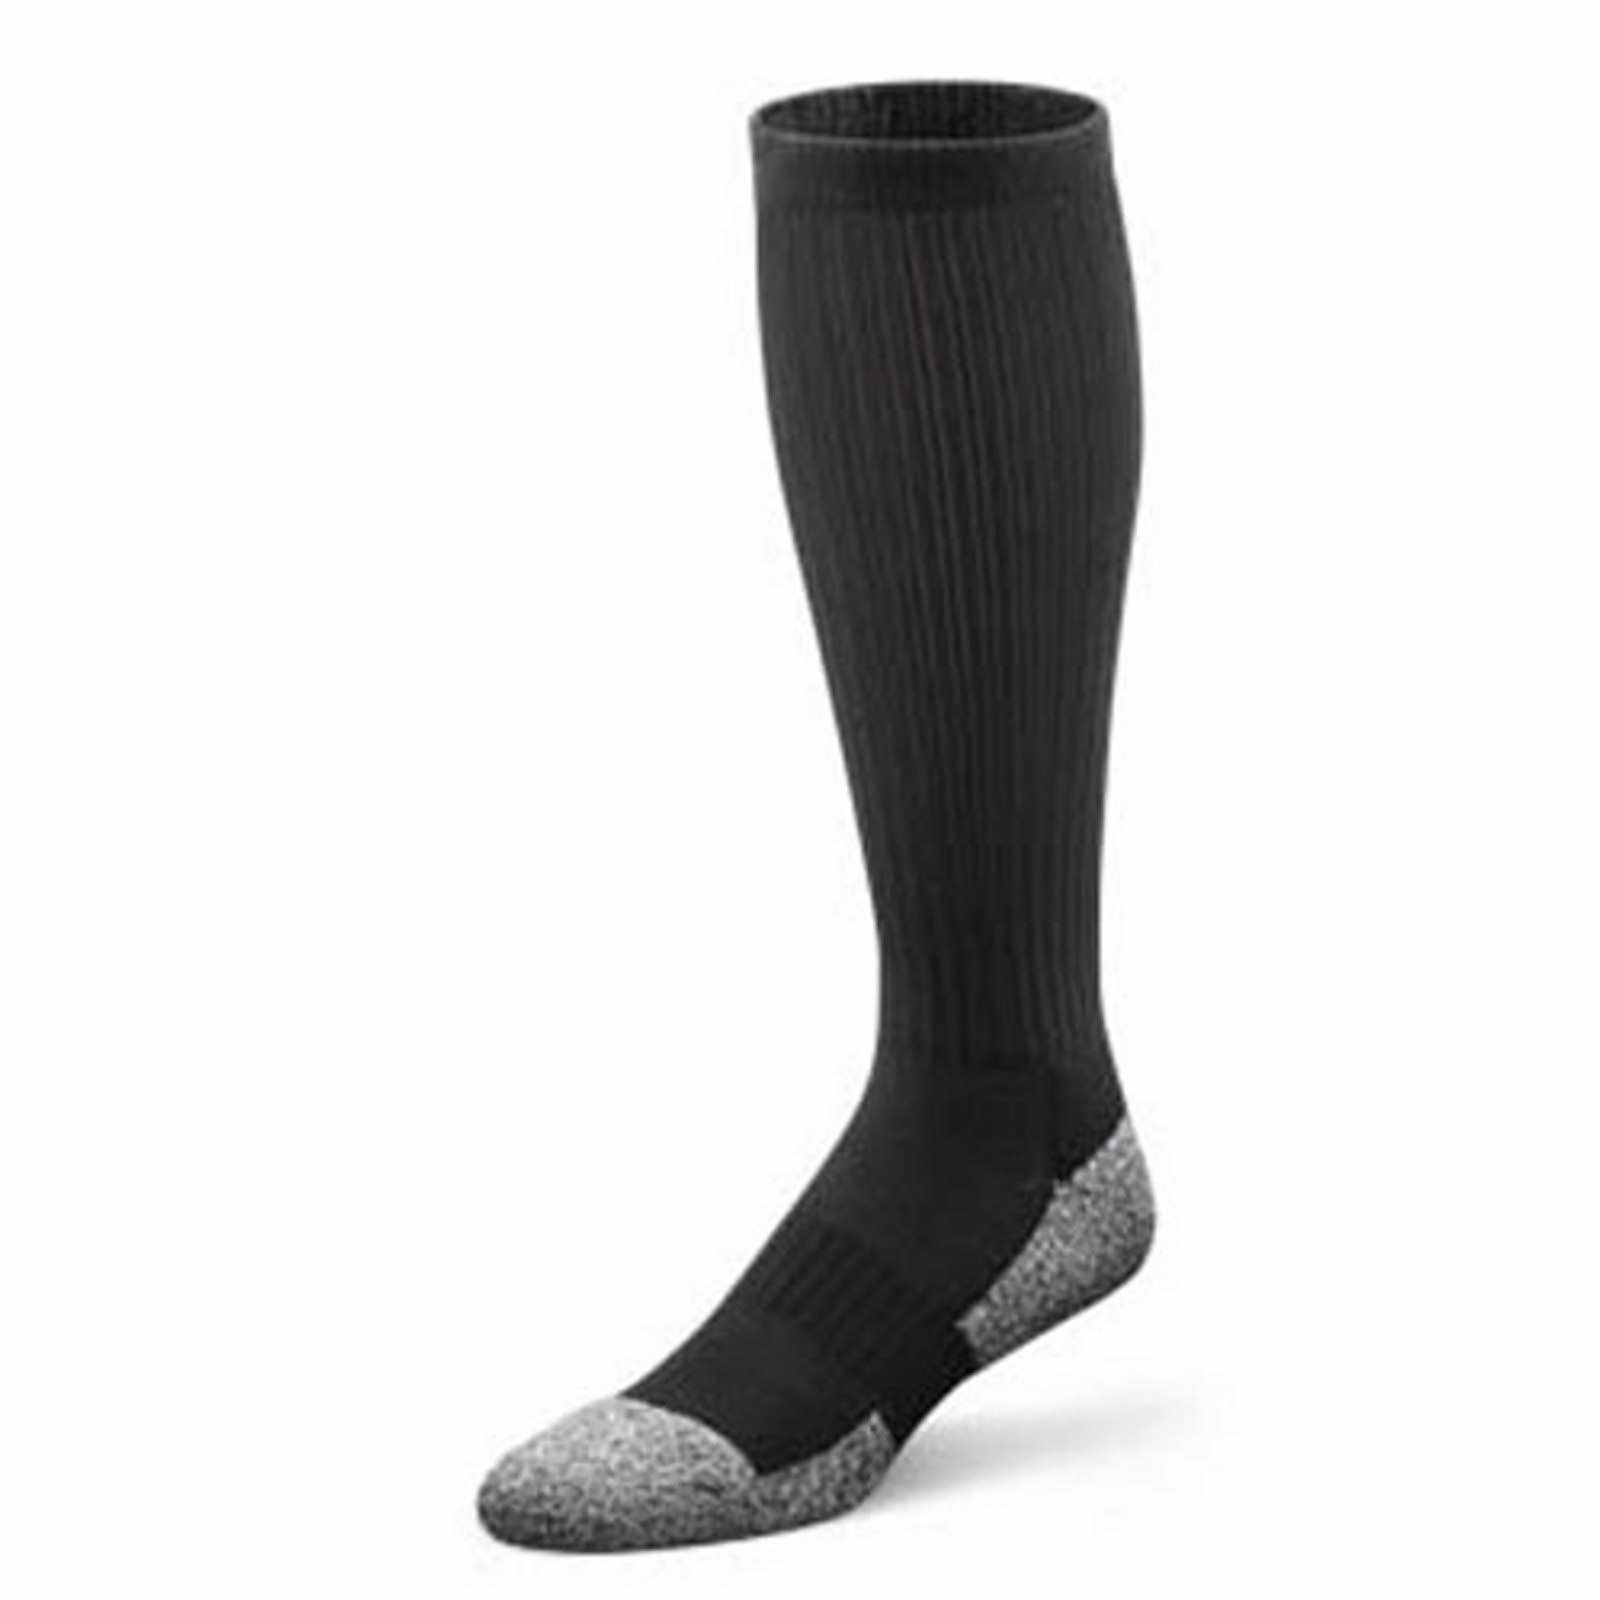 Dr Comfort Over-the-Calf Socks (4 Pair) - Men's Therapeutic Diabetic Socks - Athletic, Casual, Dress - X-Small (4) - X-Large (15 at Sears.com